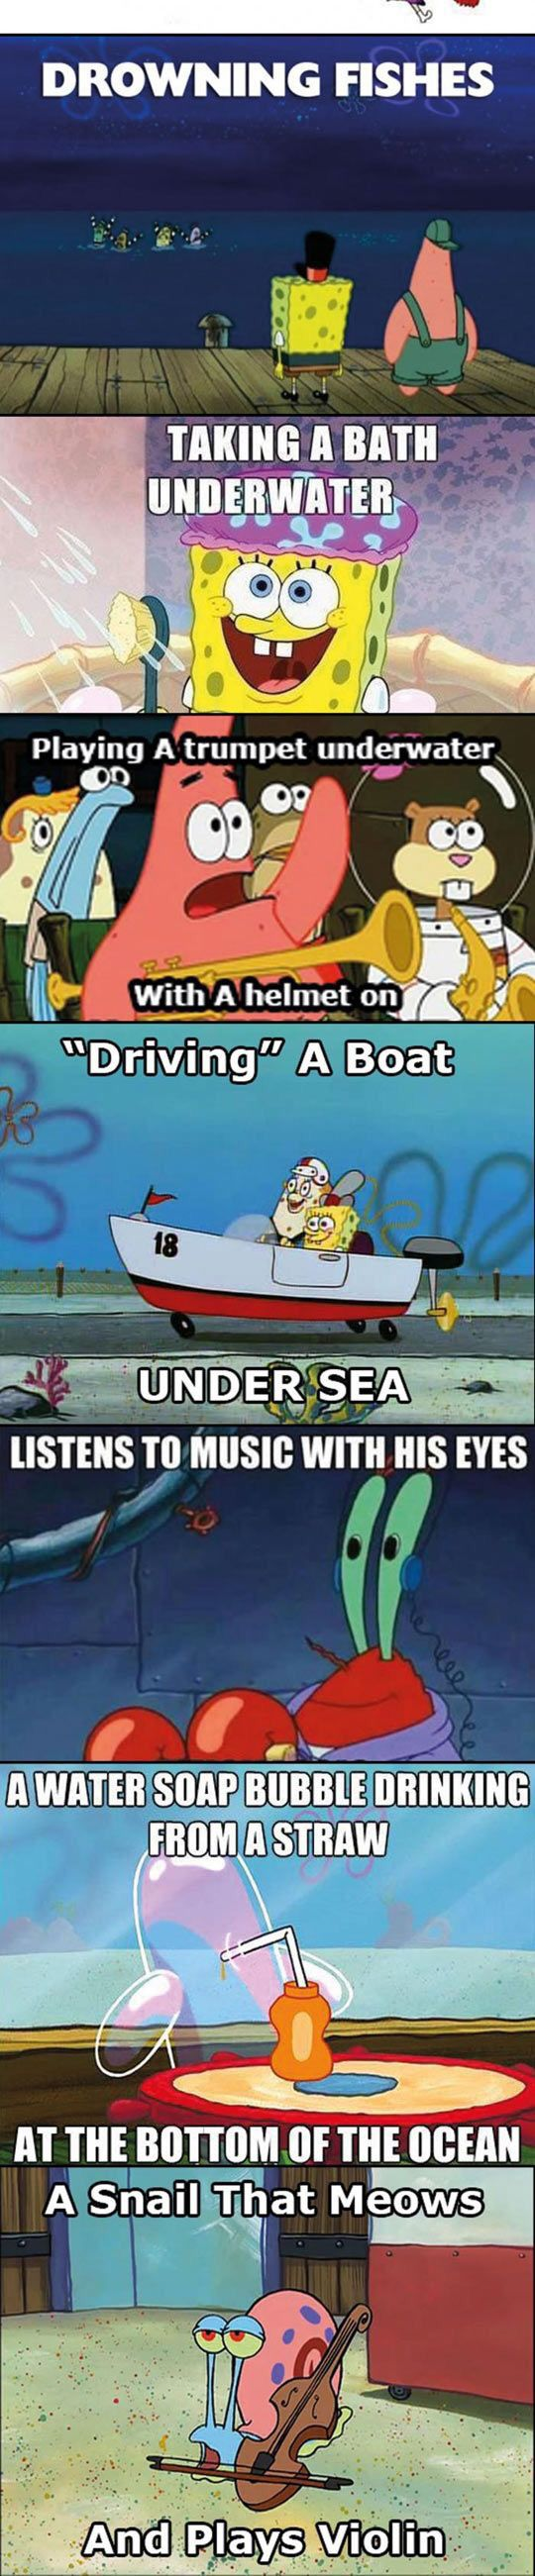 Hey thats spongebob logic for ya